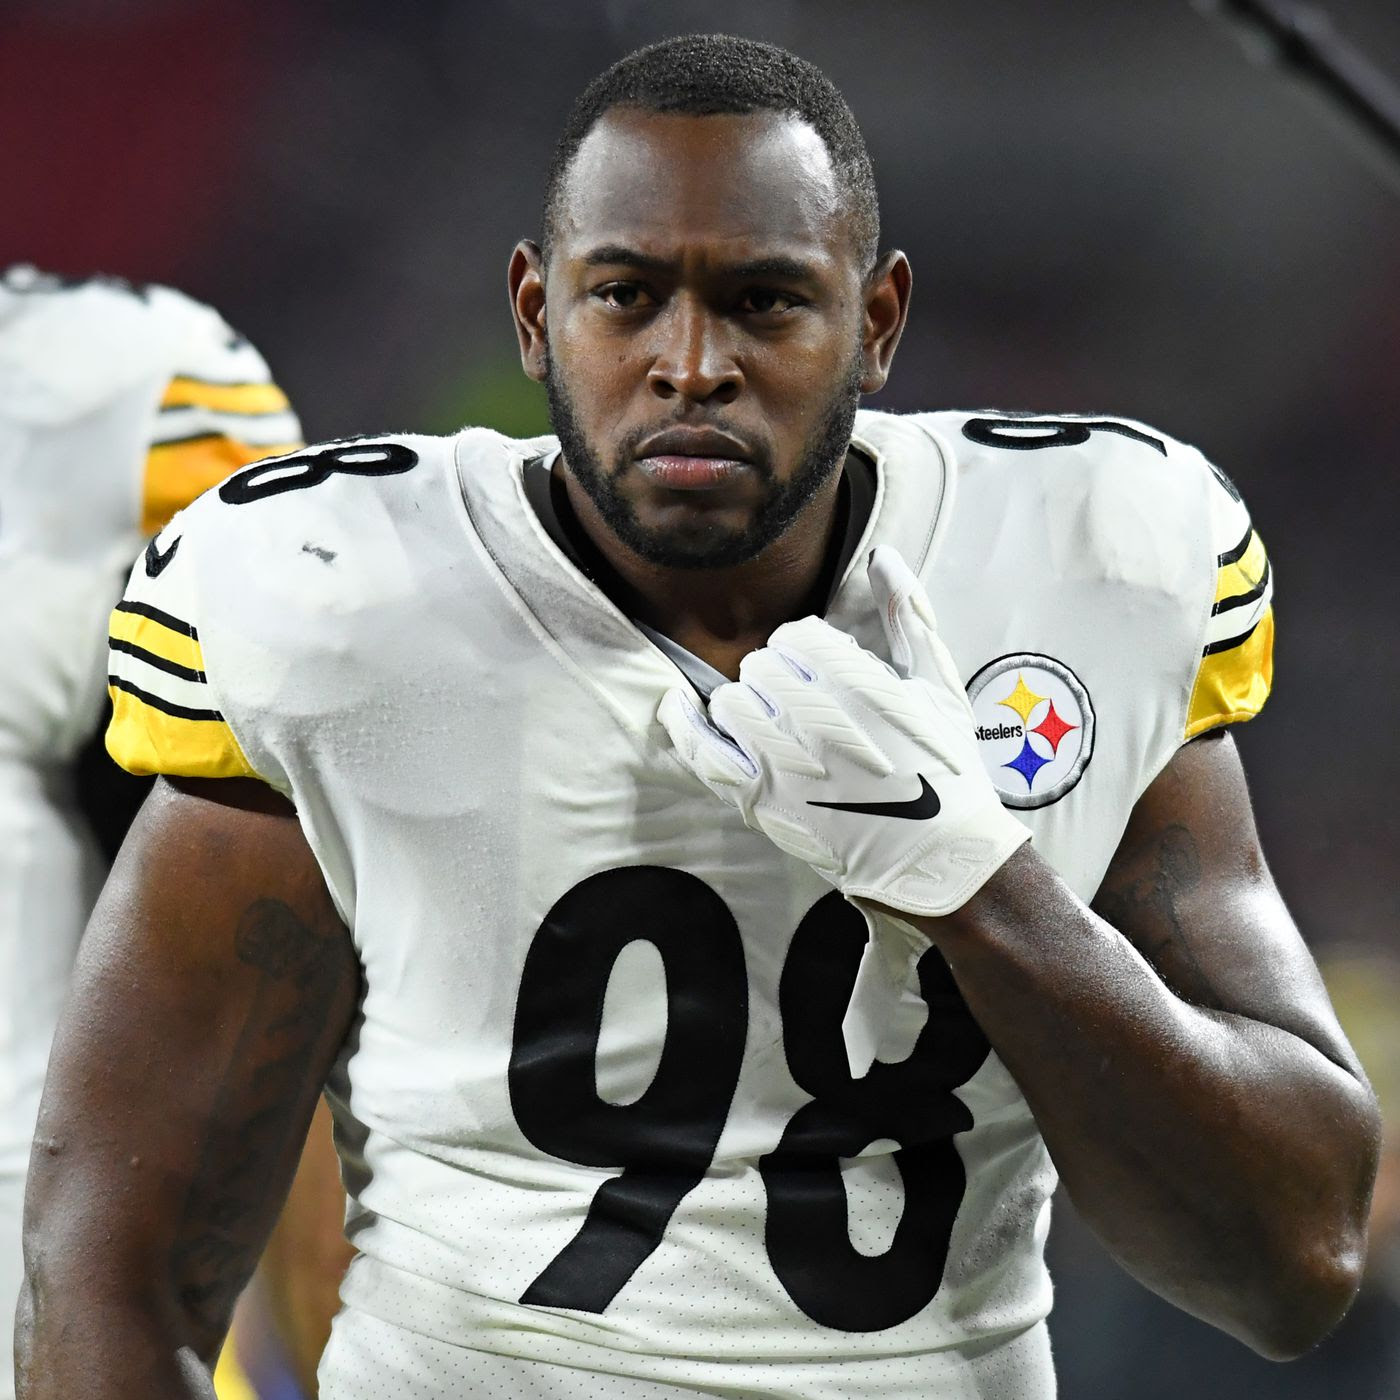 Updating the Steelers' salary cap after Vince Williams' retirement